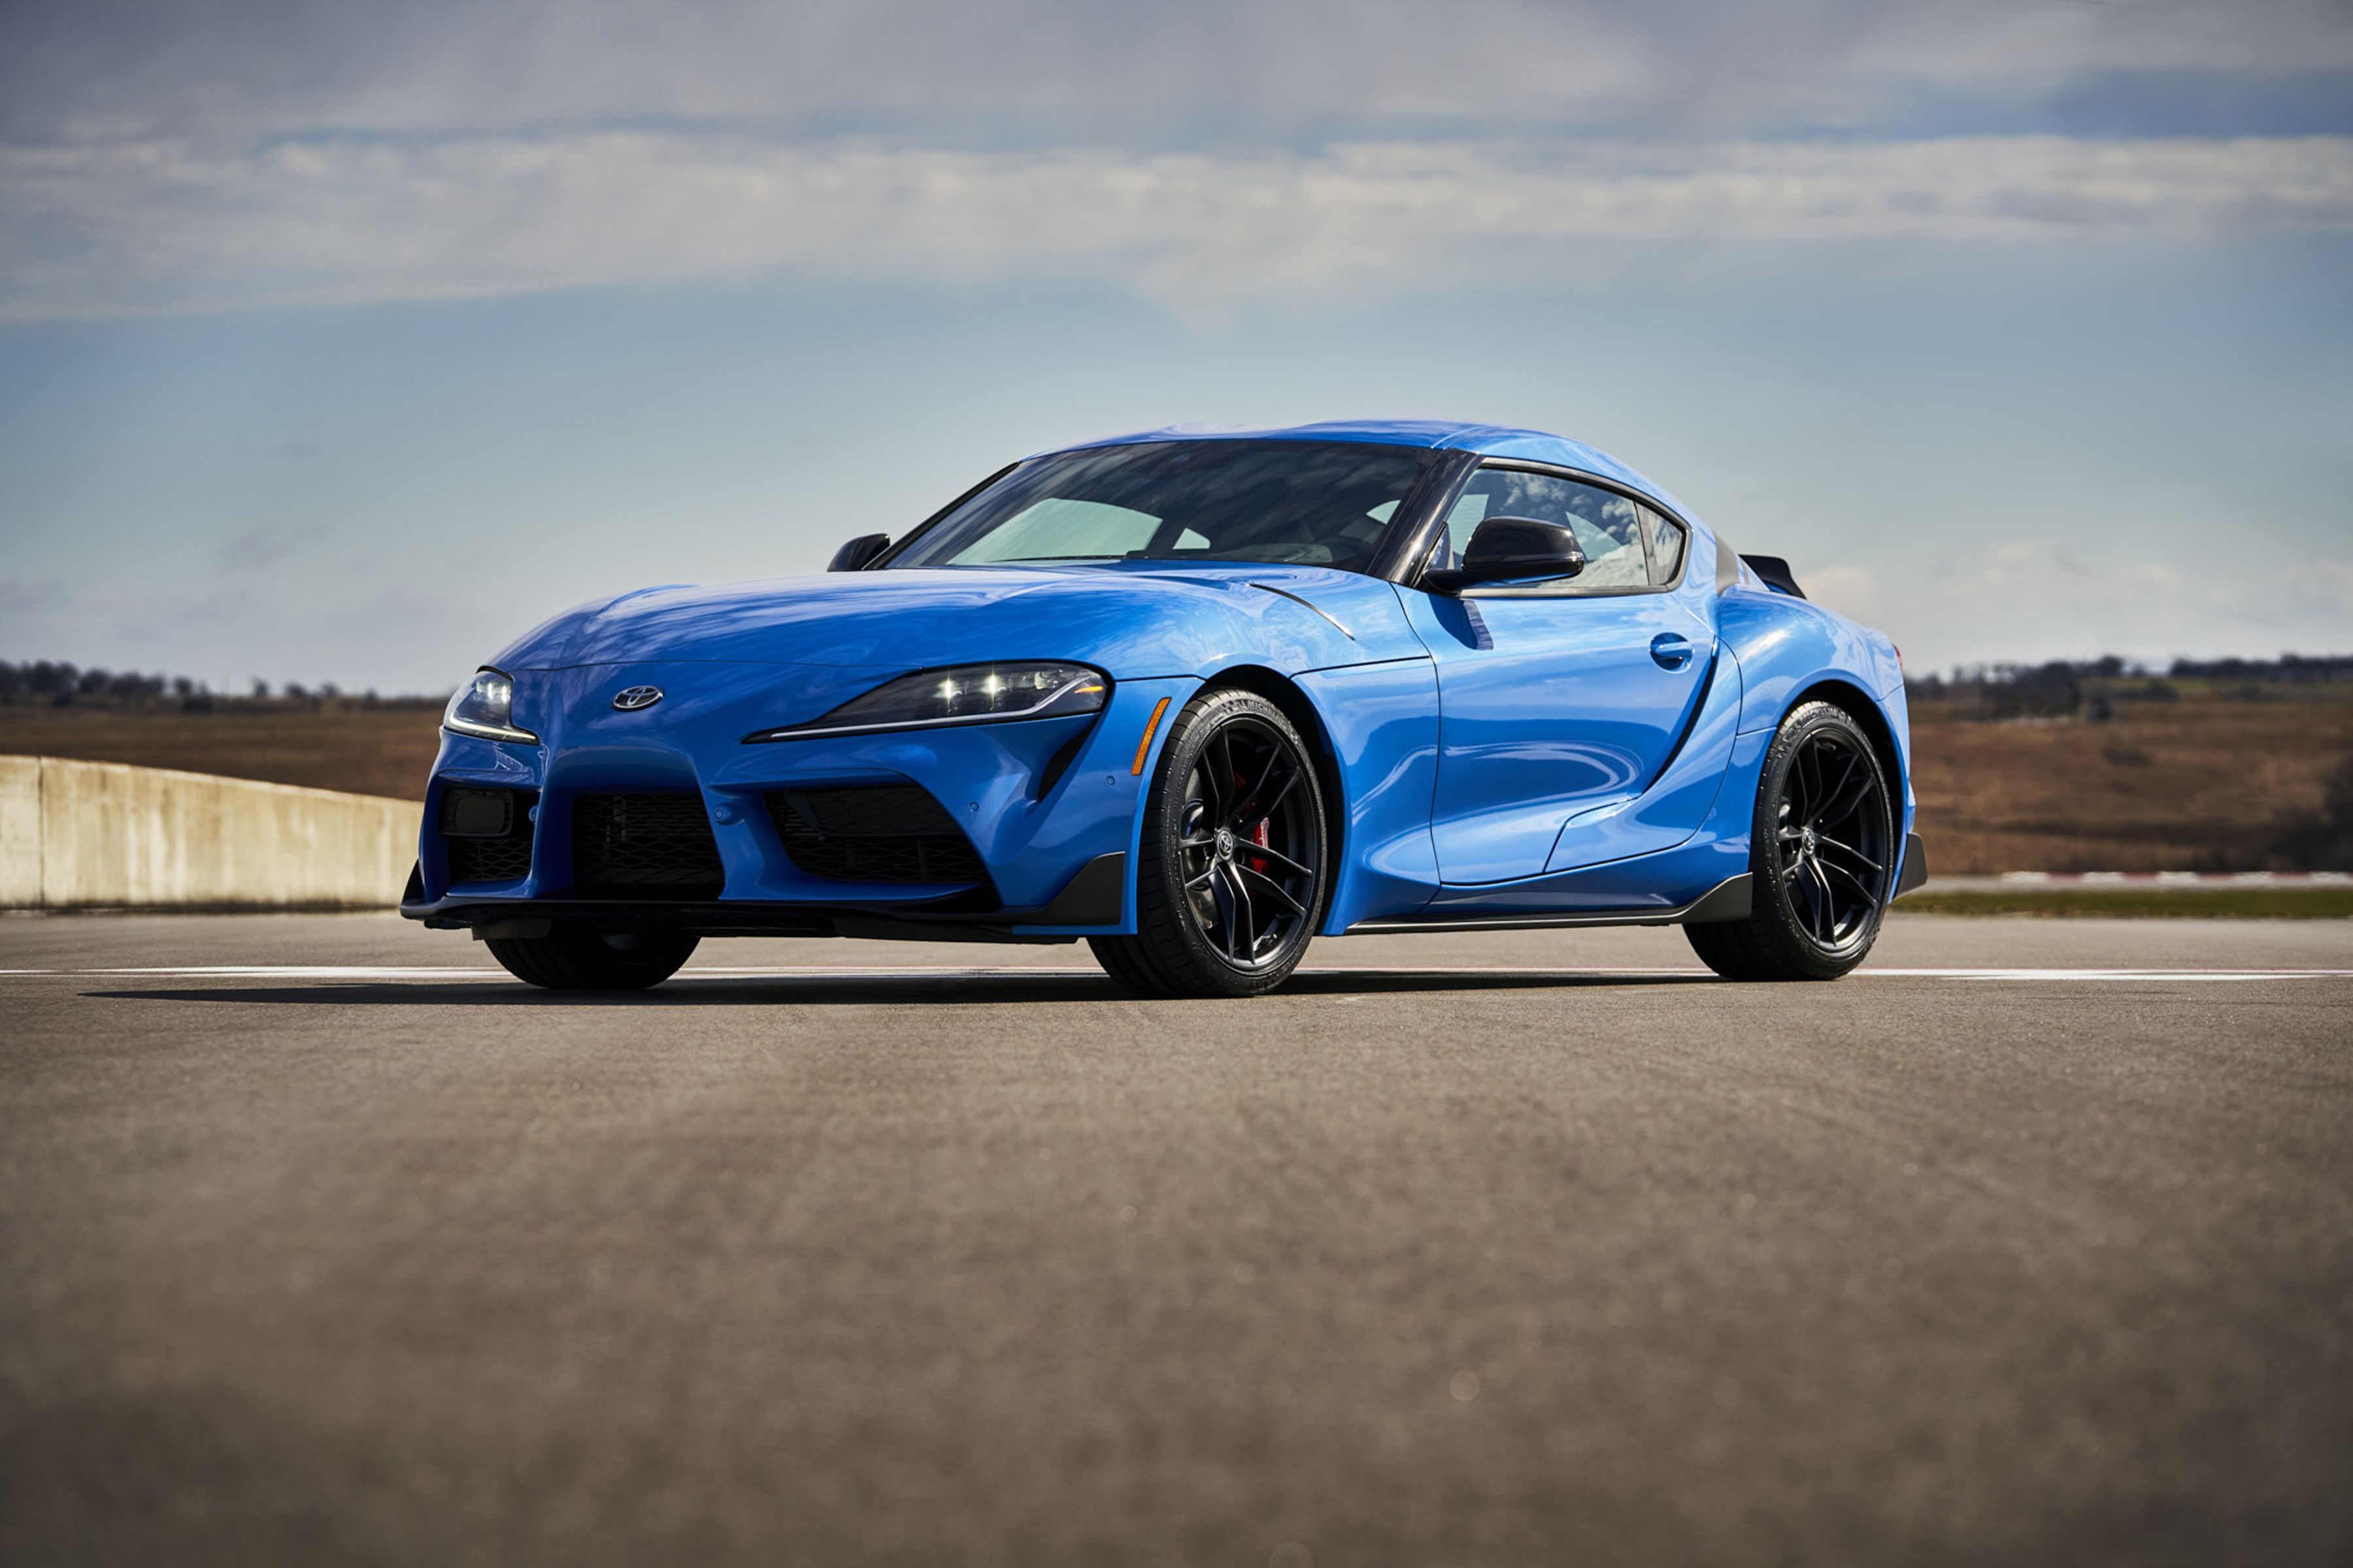 2021 Toyota GR Supra: A Four-Cylinder Variant and a Huge Power Bump for the Straight-Six